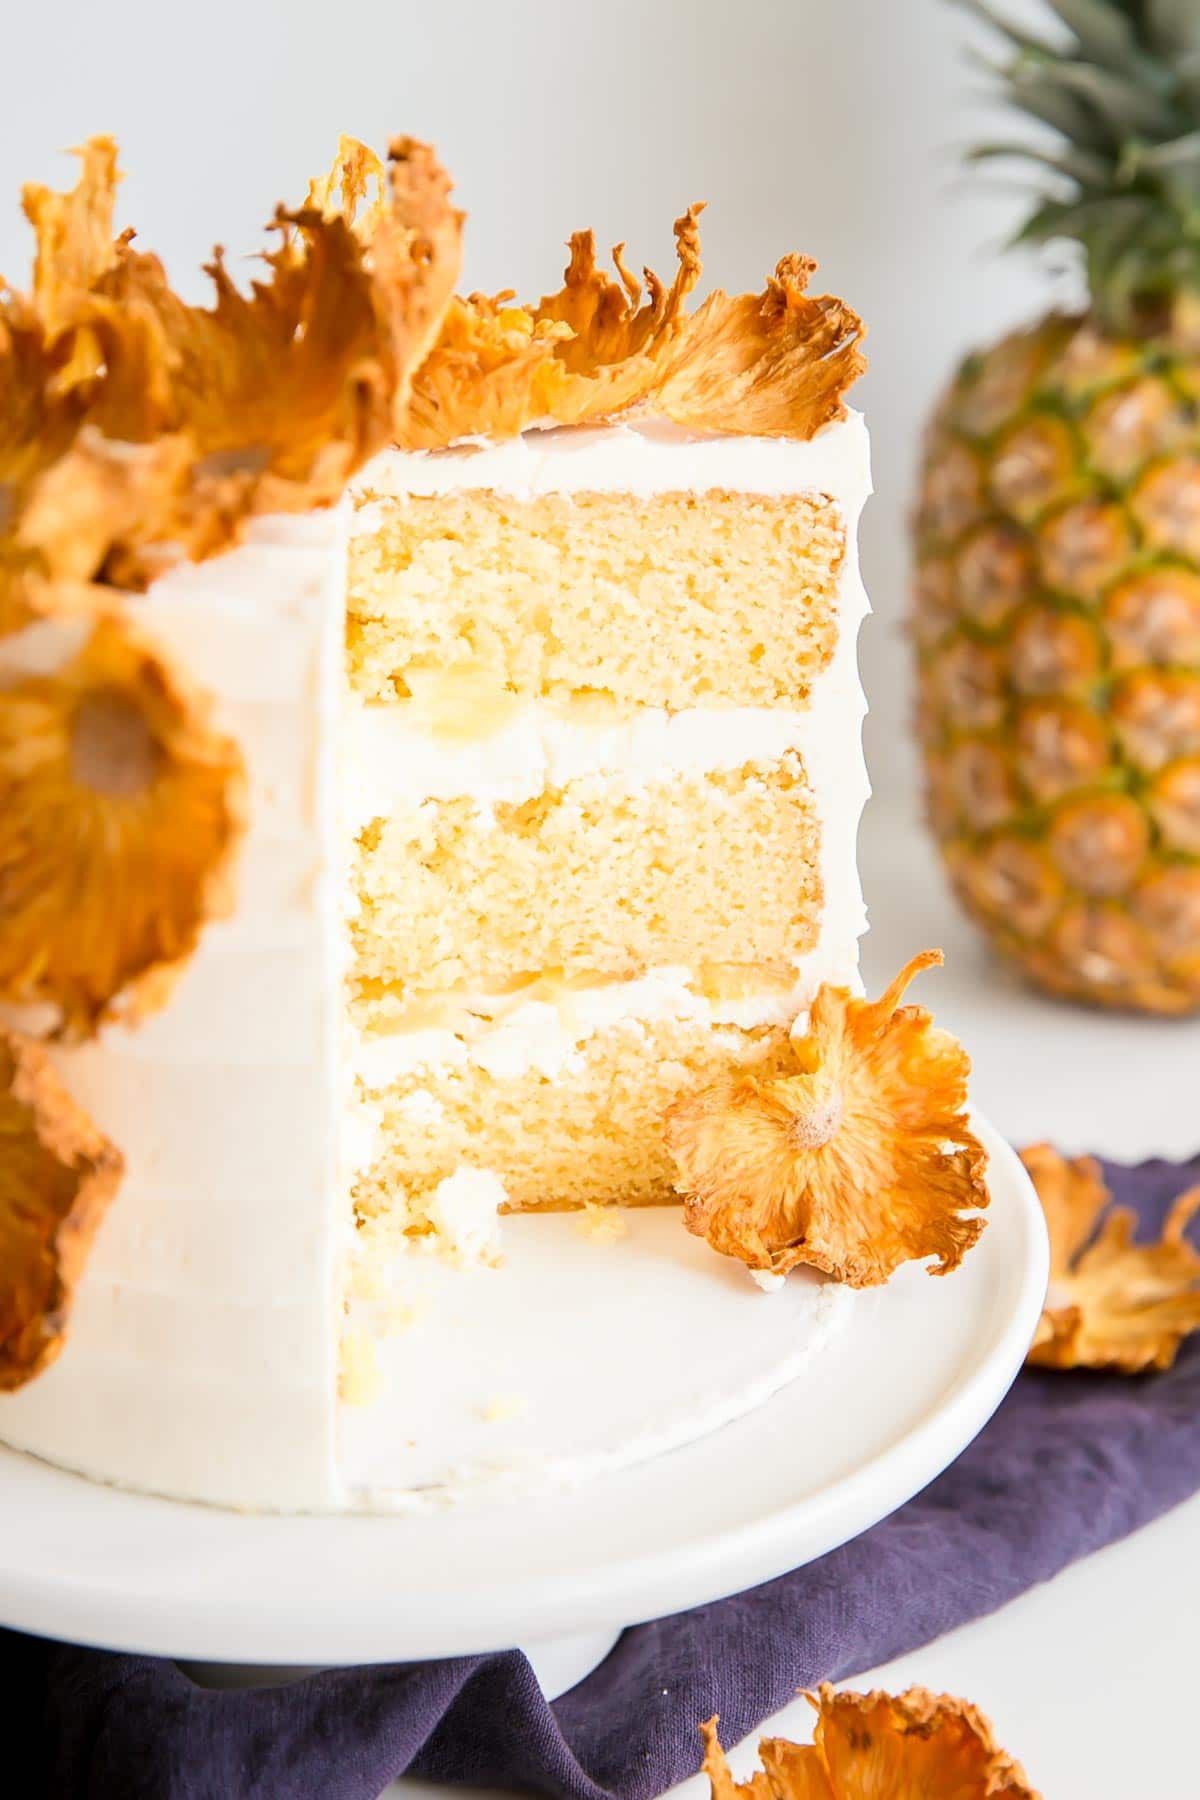 Cross-section image of a pineapple cake showing the cake layers, frosting, and fresh pineapple.